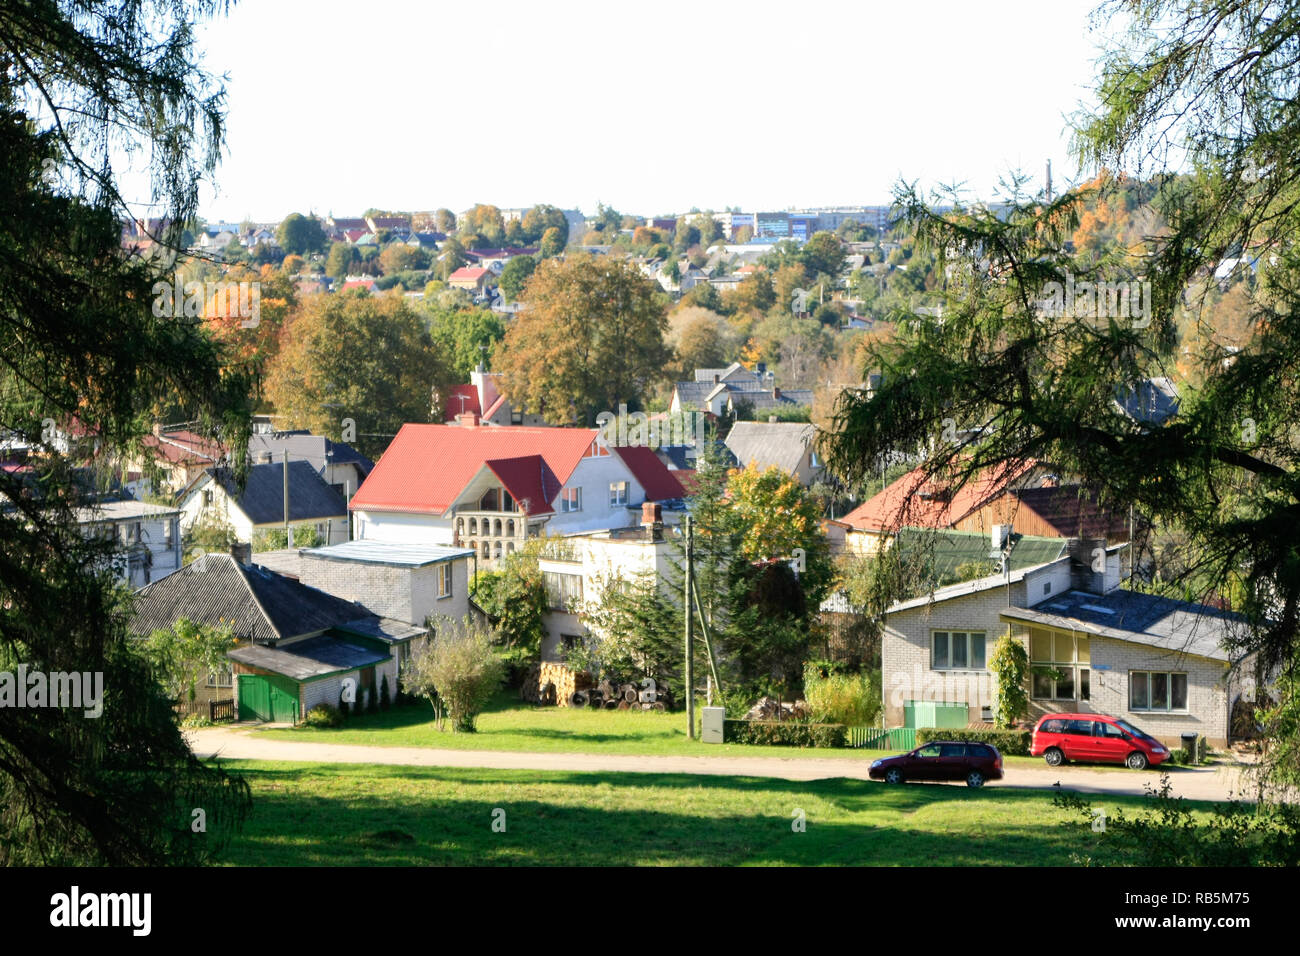 Fantastic landscape view of houses down the hill. In the background you can also see trees and forest. - Stock Image